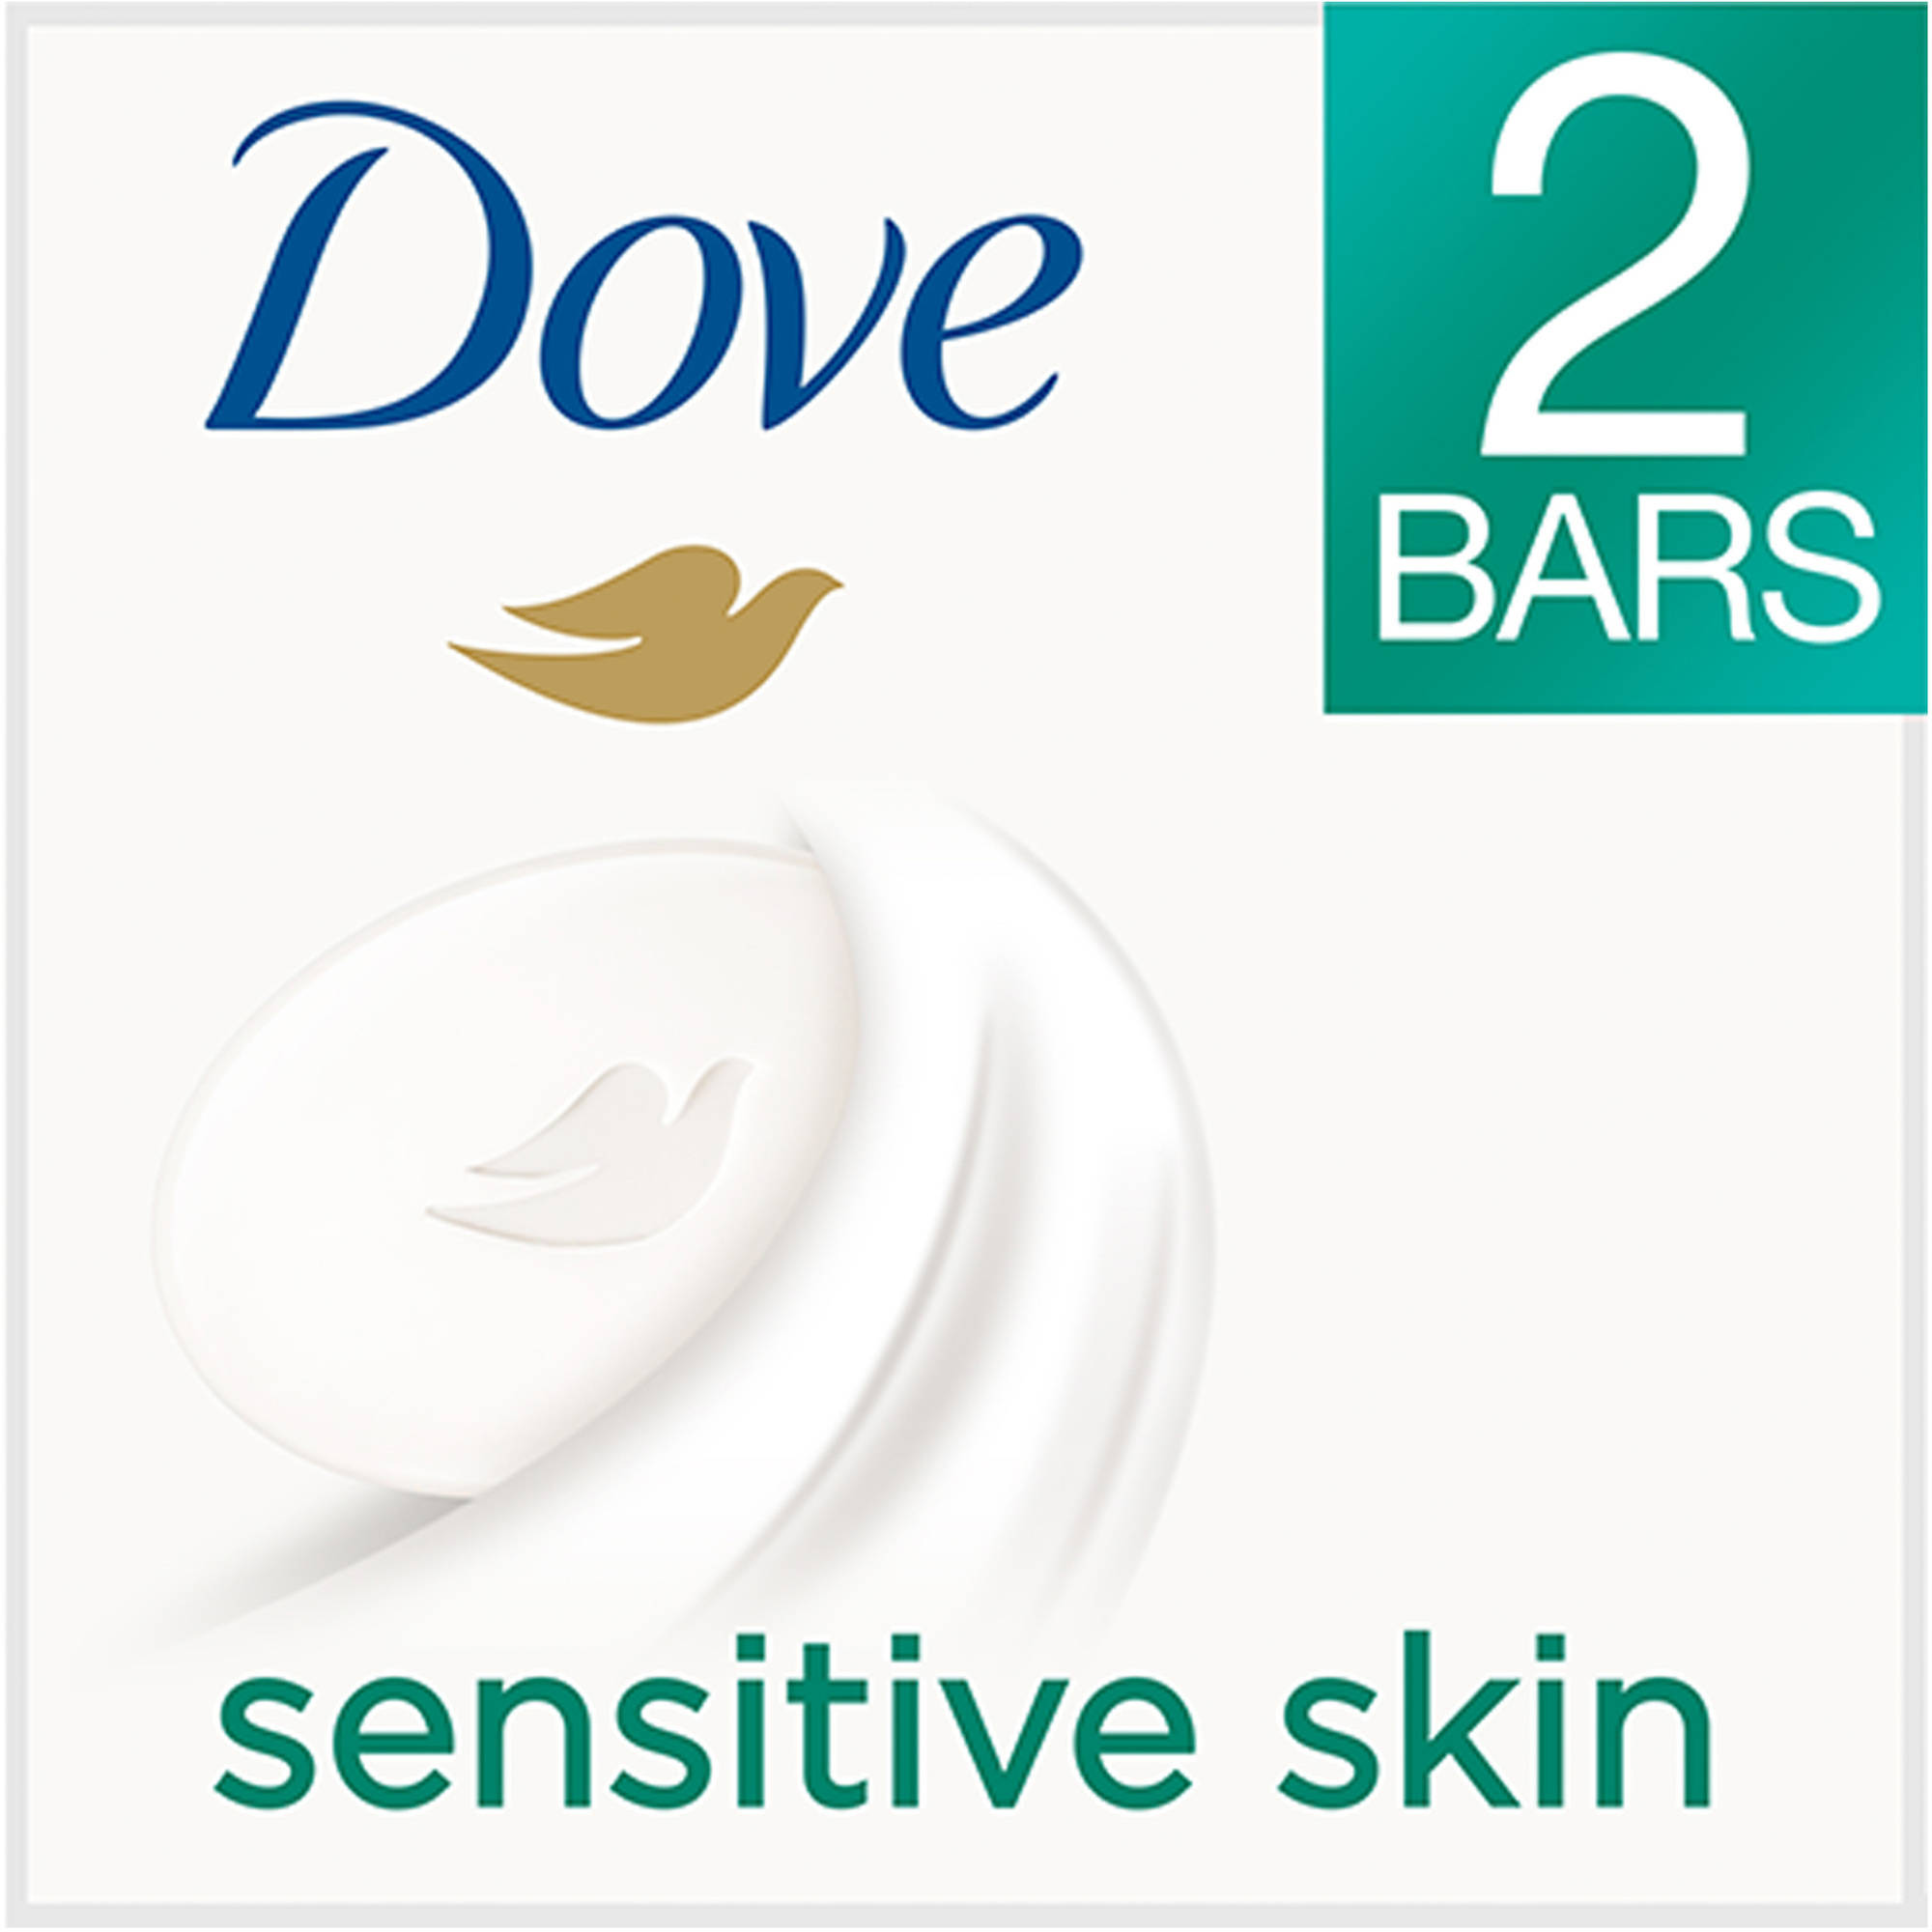 Dove Sensitive Skin Beauty Bar, 4 oz, 2 Bar